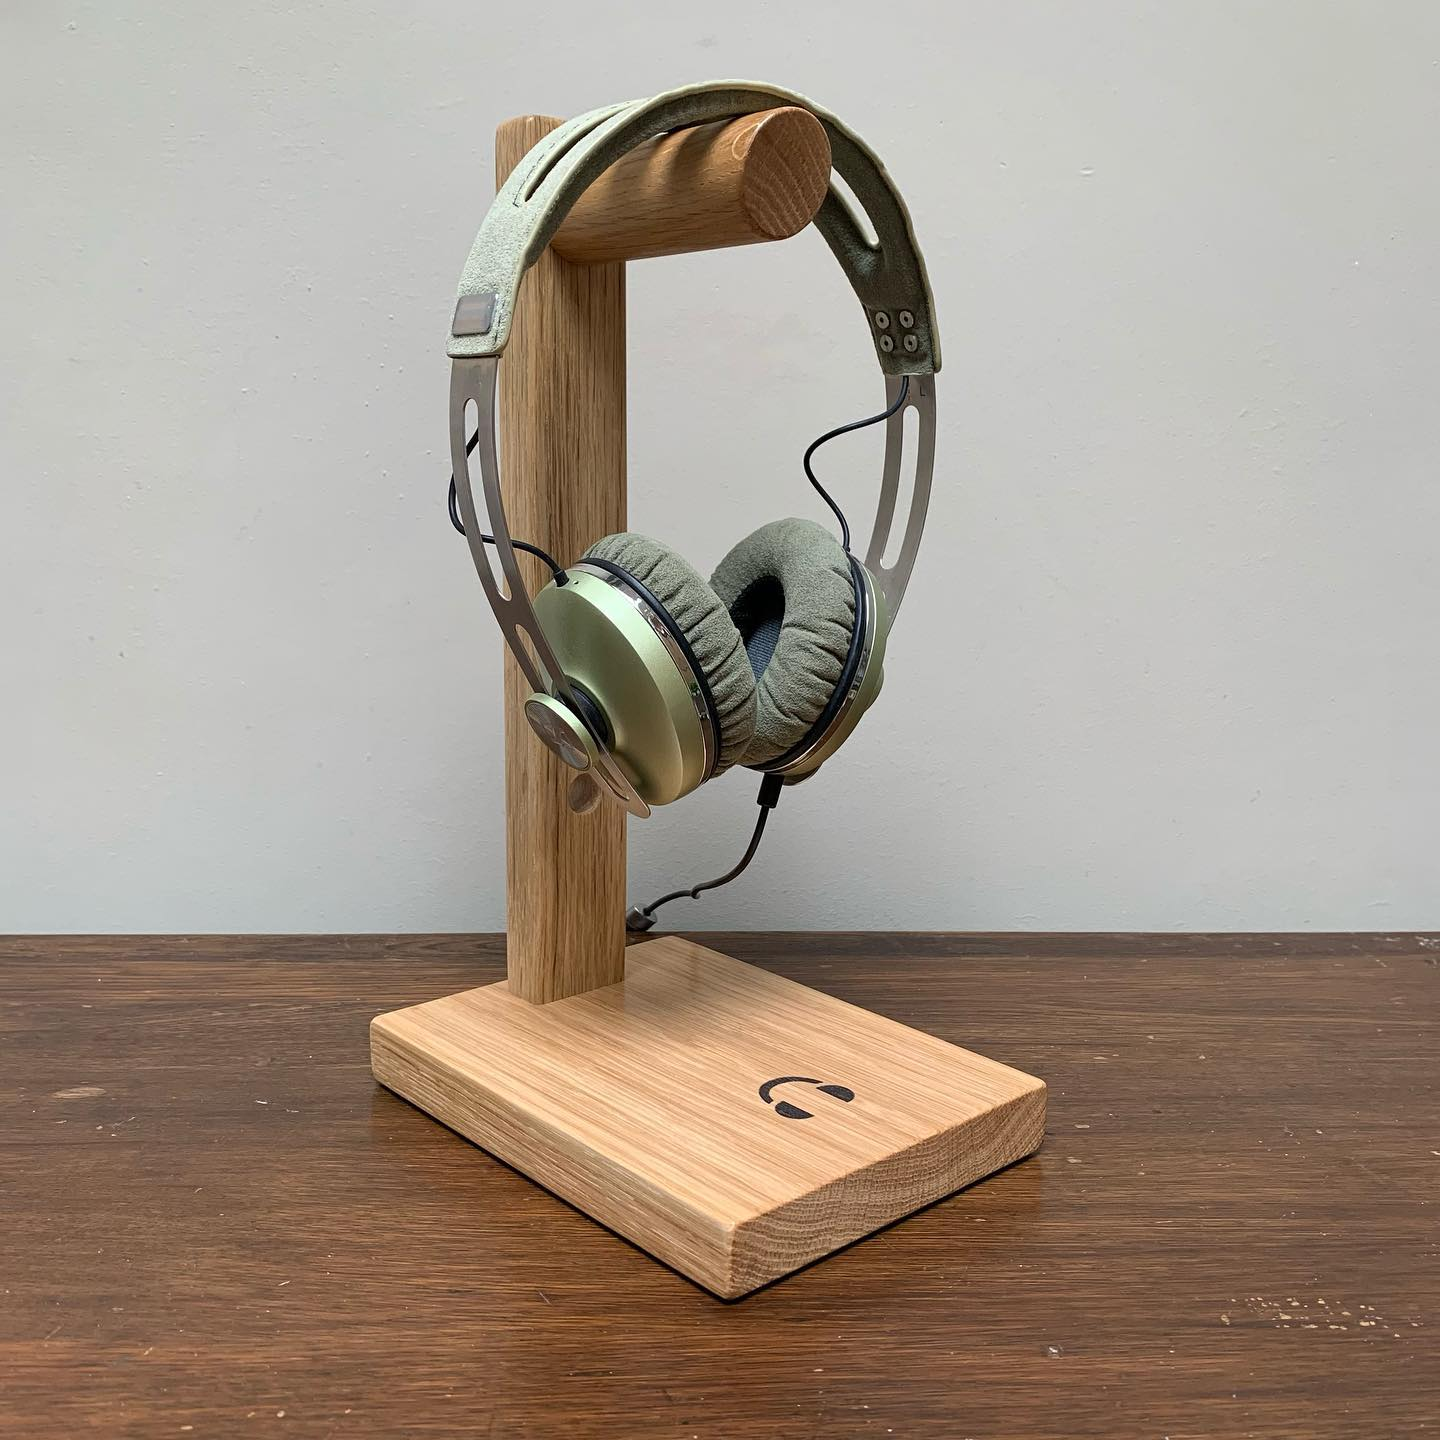 These headphone stands are now available to purchase through our website!A great addition to any desk, side table or music room.Made from oak and finished with a clear semi gloss varnish, bringing out the warm tones and grain of the wood.For those with headphones which require charging, the stand includes a handy hole for cable management.Maximum height of headphones is 25cm from top of hook to base.Follow the product link or visit www.gingerandtweed.com Link in bio @gingerandtweed..#homedecor #music #desktop #workingfromhome #office #newproduct #oak #handcrafted #design #gingerandtweed